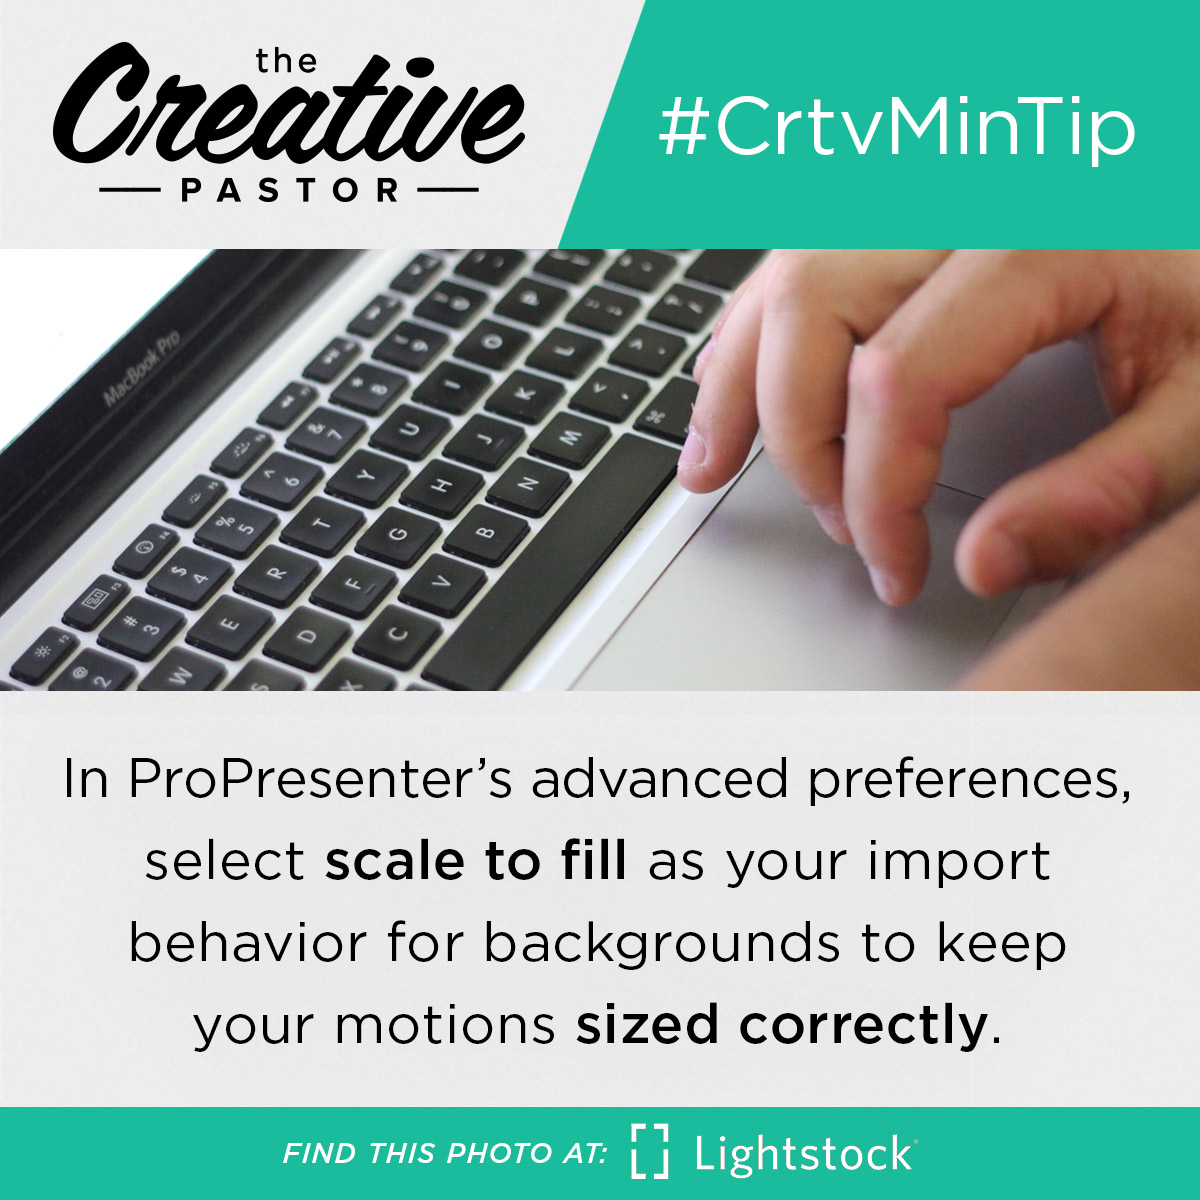 #CrtvMinTip: In ProPresenter's advanced preferences, select scale to fill as your import behavior for backgrounds to keep your motions sized correctly.